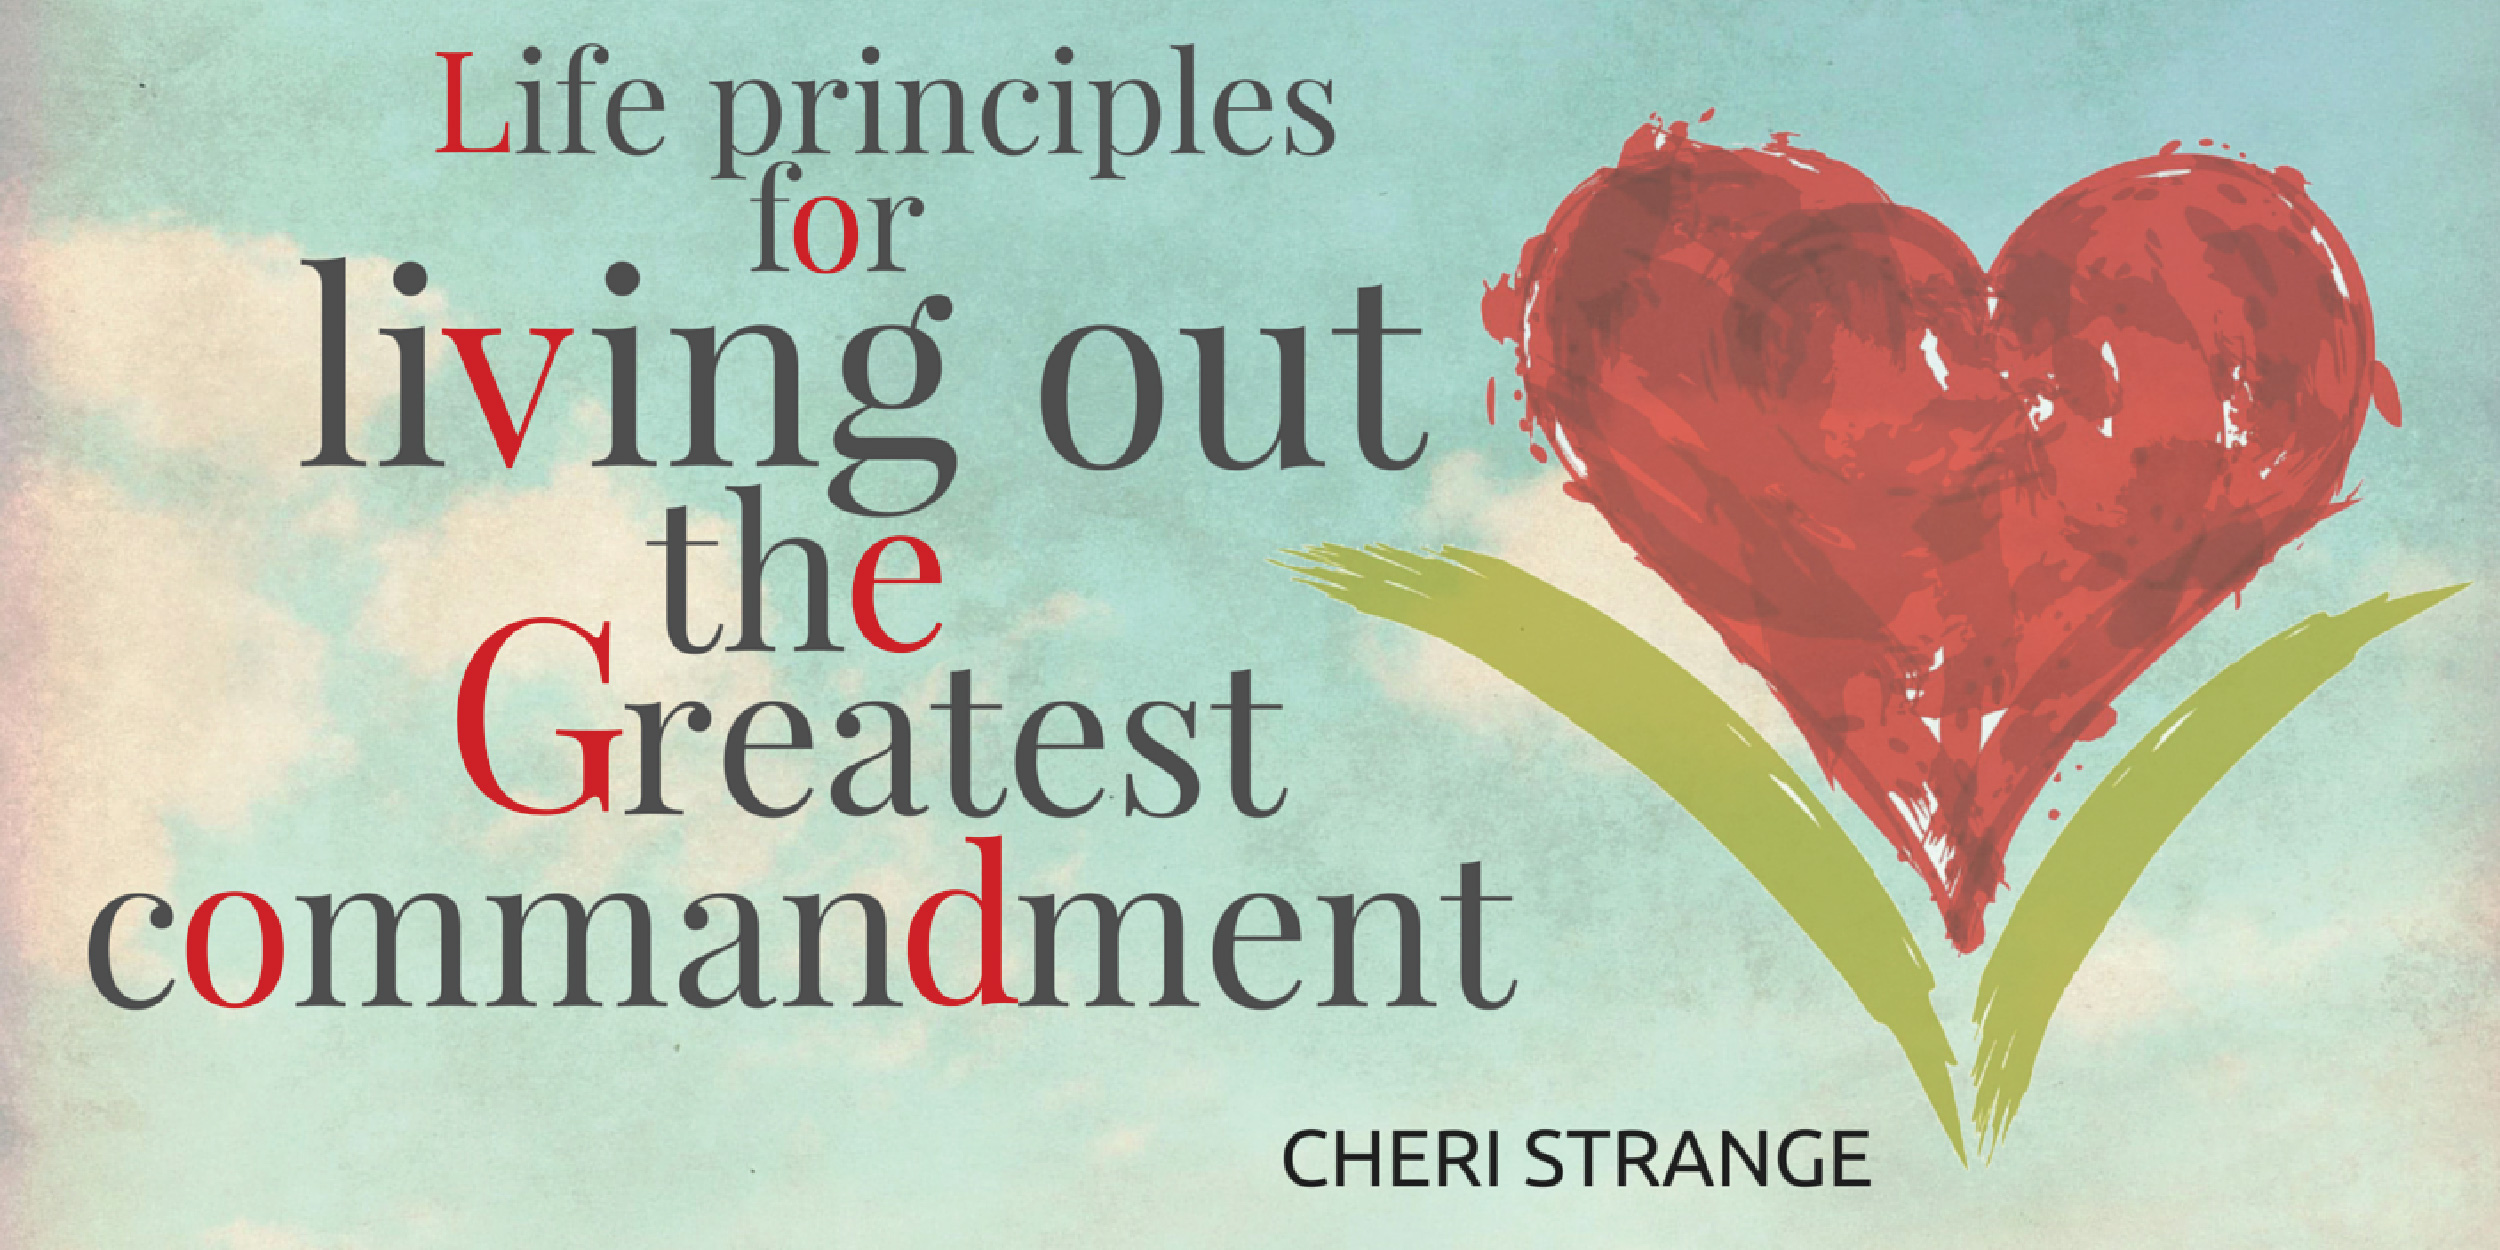 https://www.sheyearns.com/Life%20Principles%20for%20Living%20Out%20the%20Greatest%20Commandment